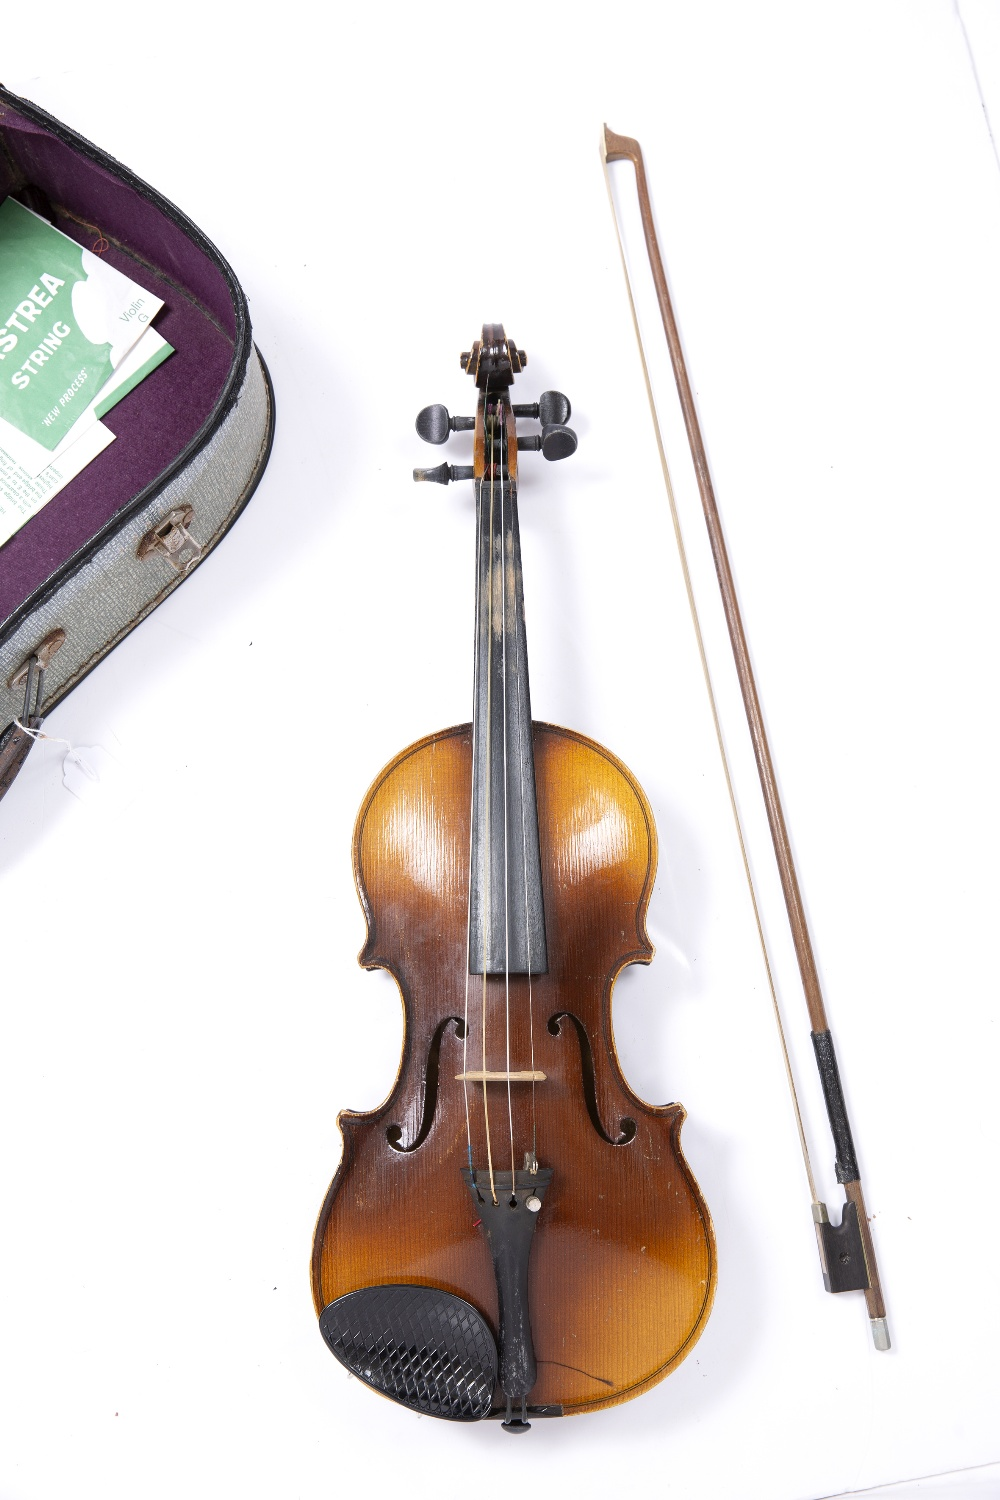 A CZECH STUDENT VIOLIN AND BOW, back length 34cm, cased - Image 3 of 3